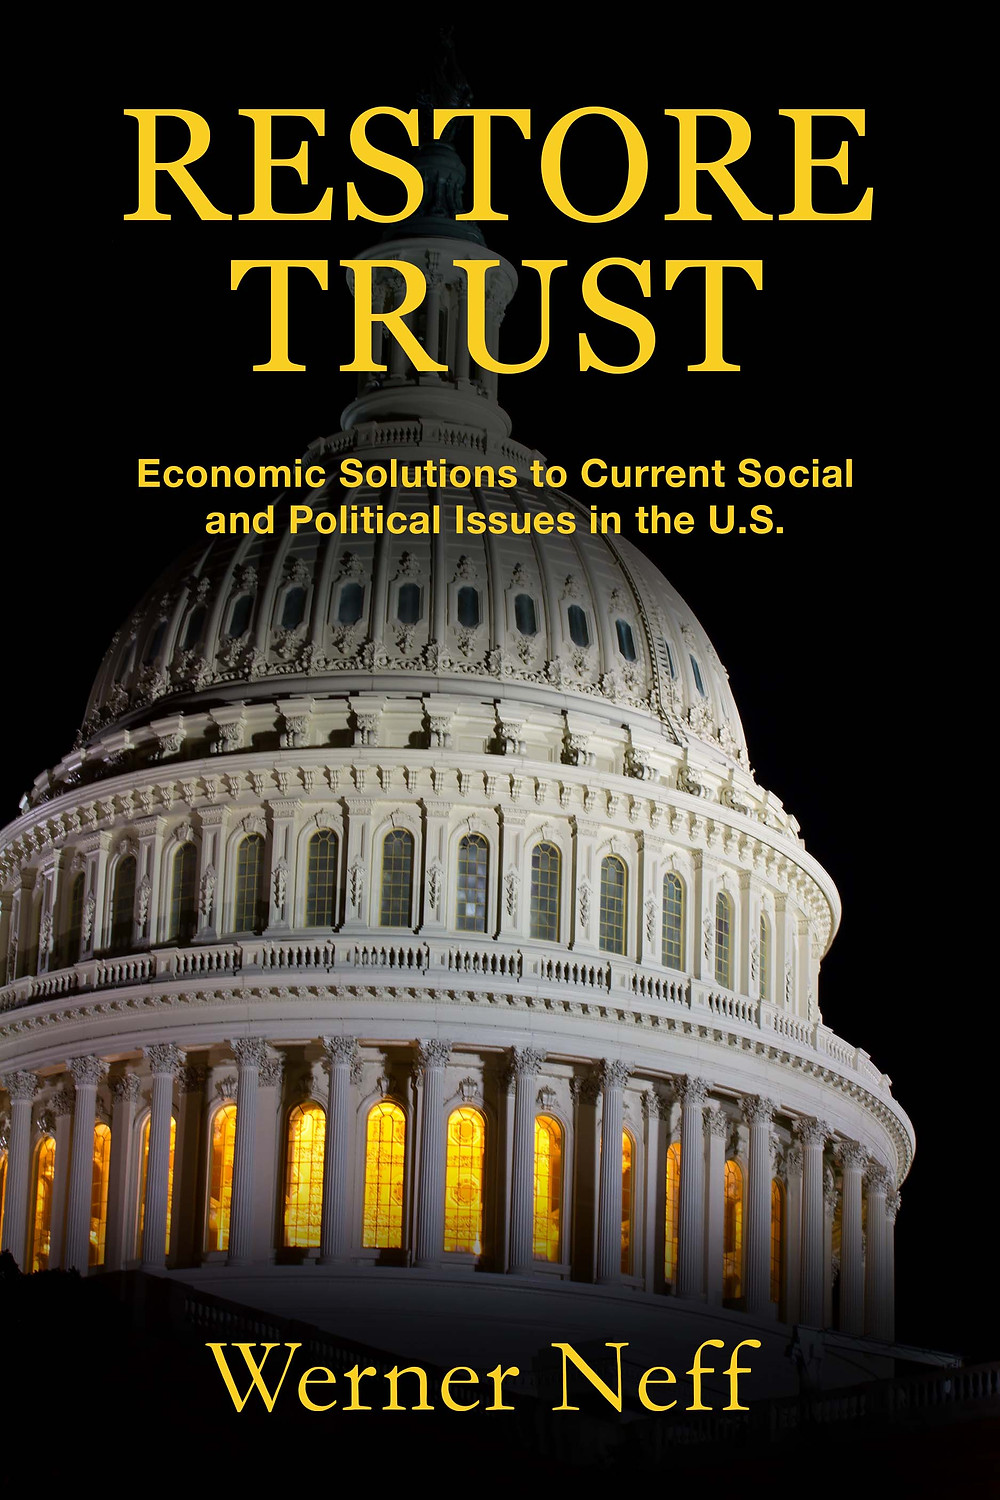 Restore Trust: Economic Solutions to Current Social and Political Issues in the U.S. by Werner Neff_The BookWalker